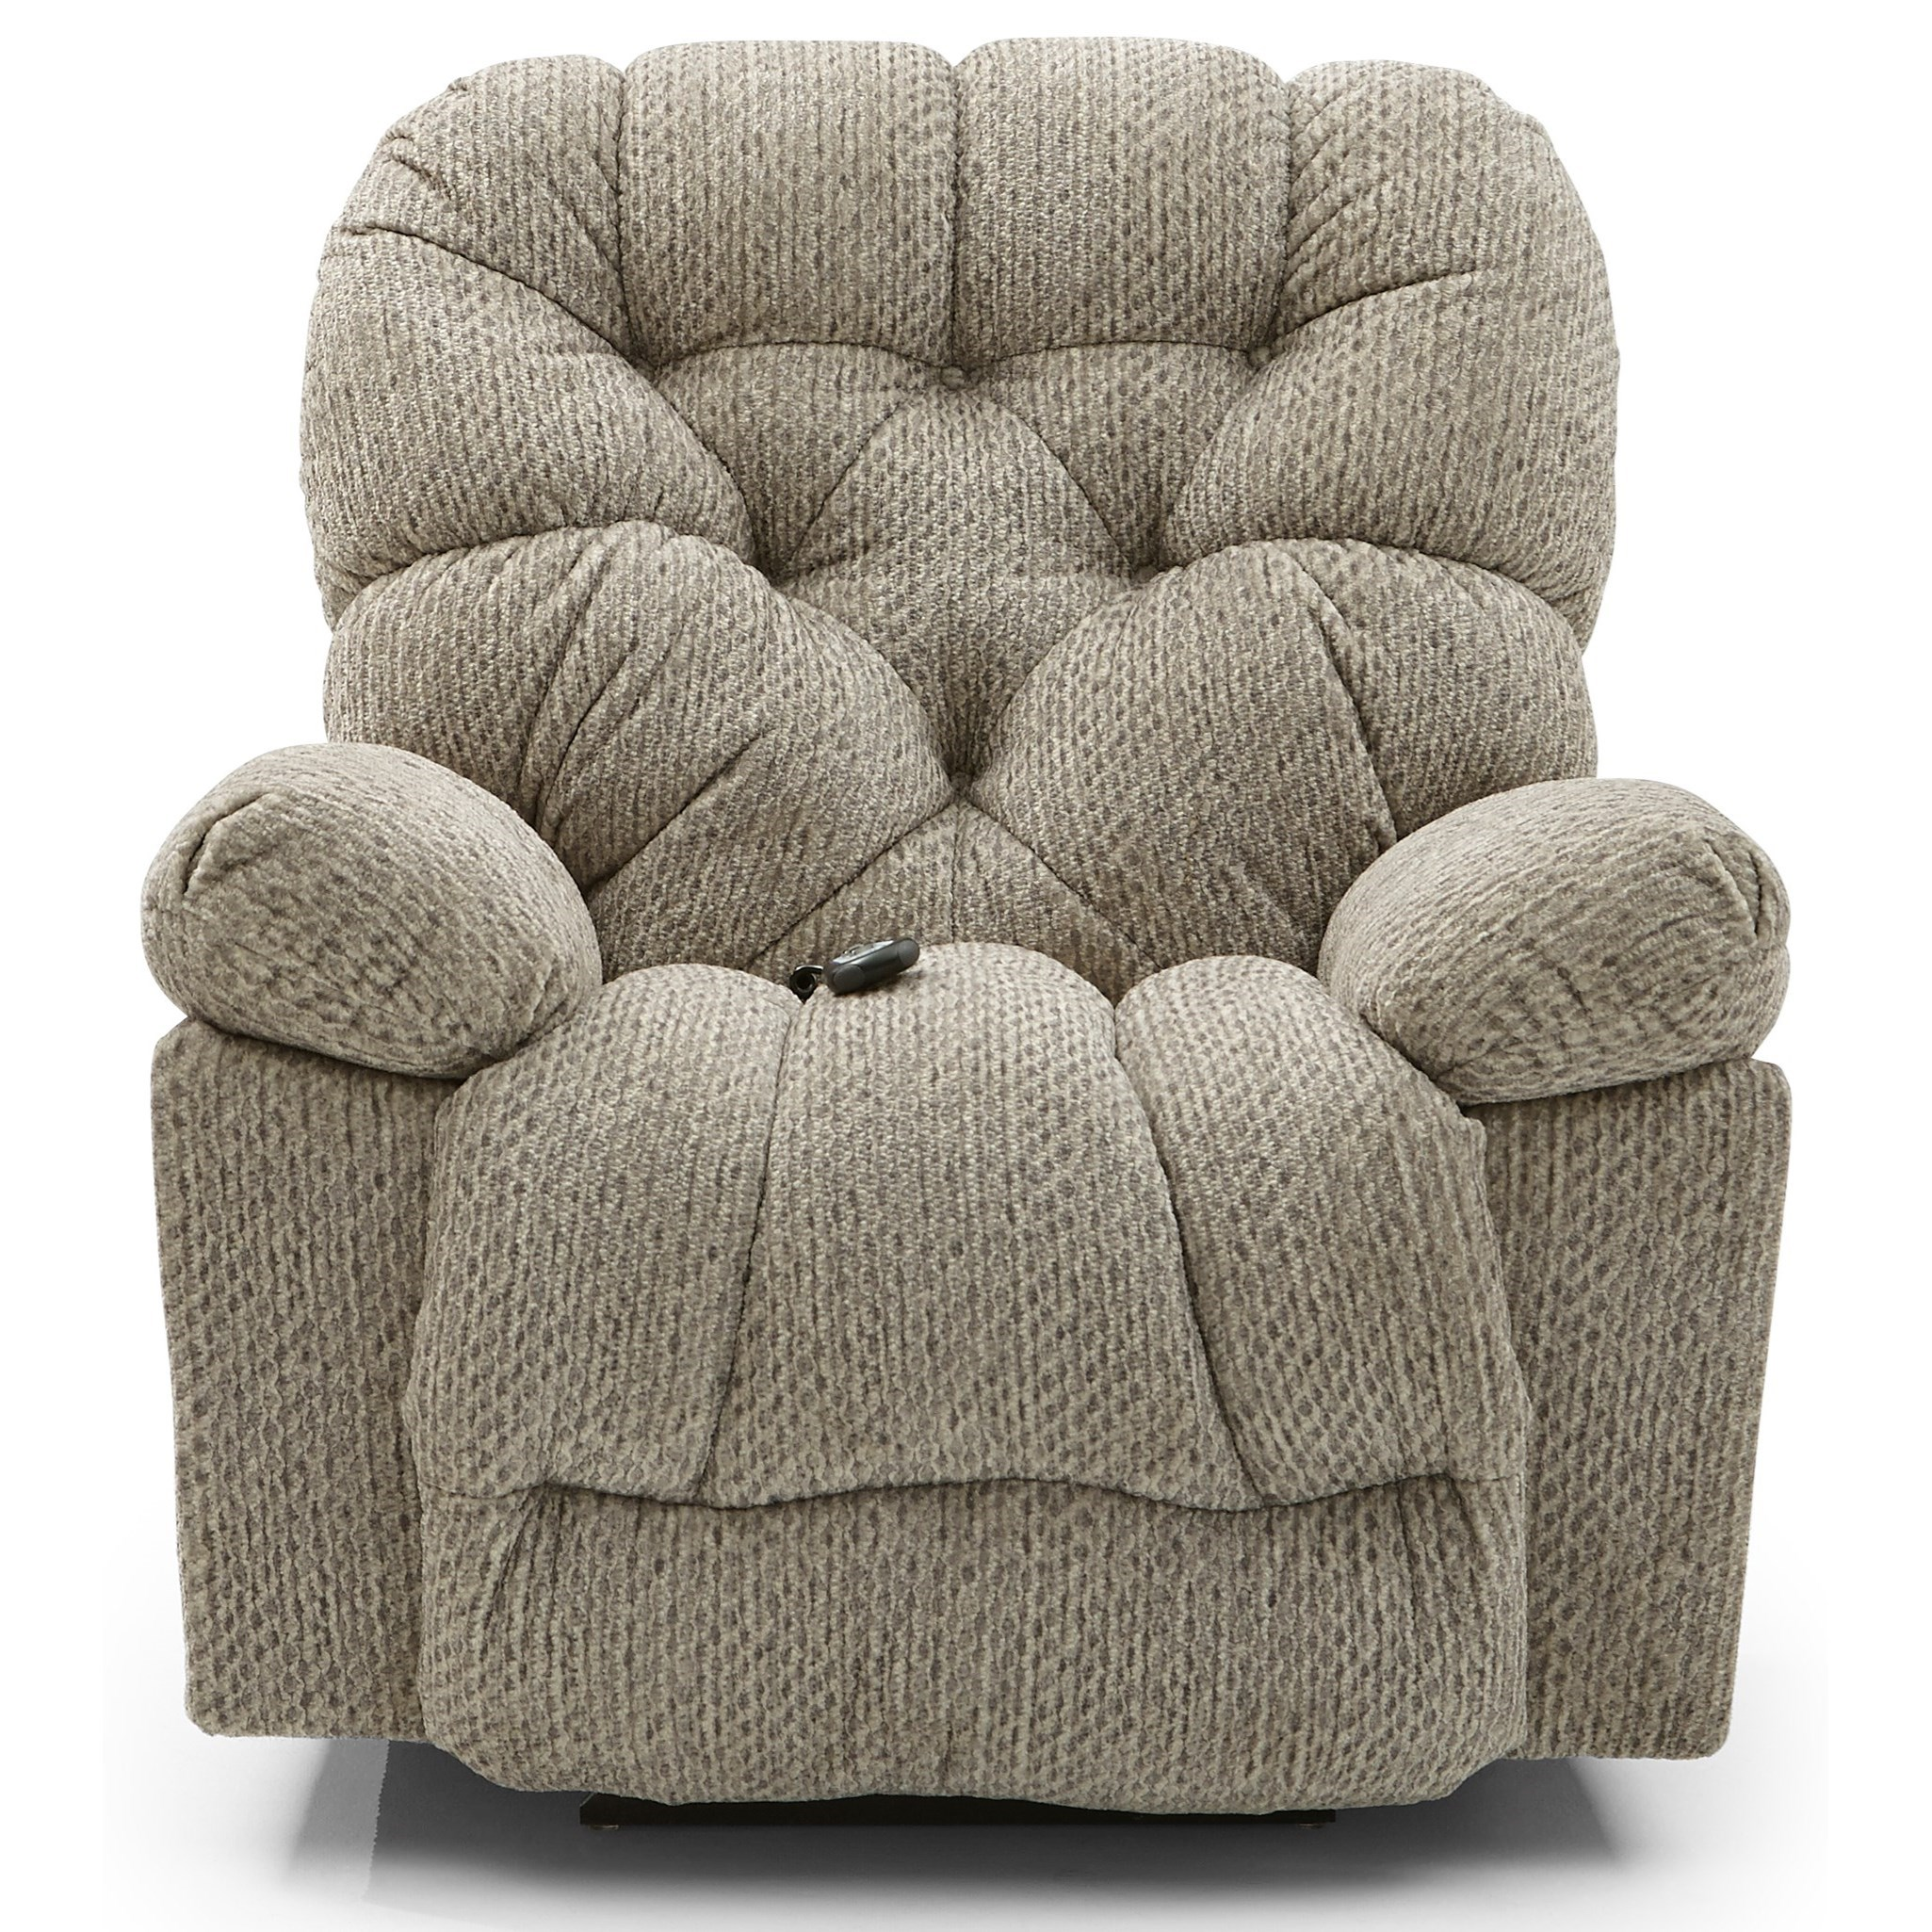 Bolt Space Saver Recliner by Best Home Furnishings at Baer's Furniture